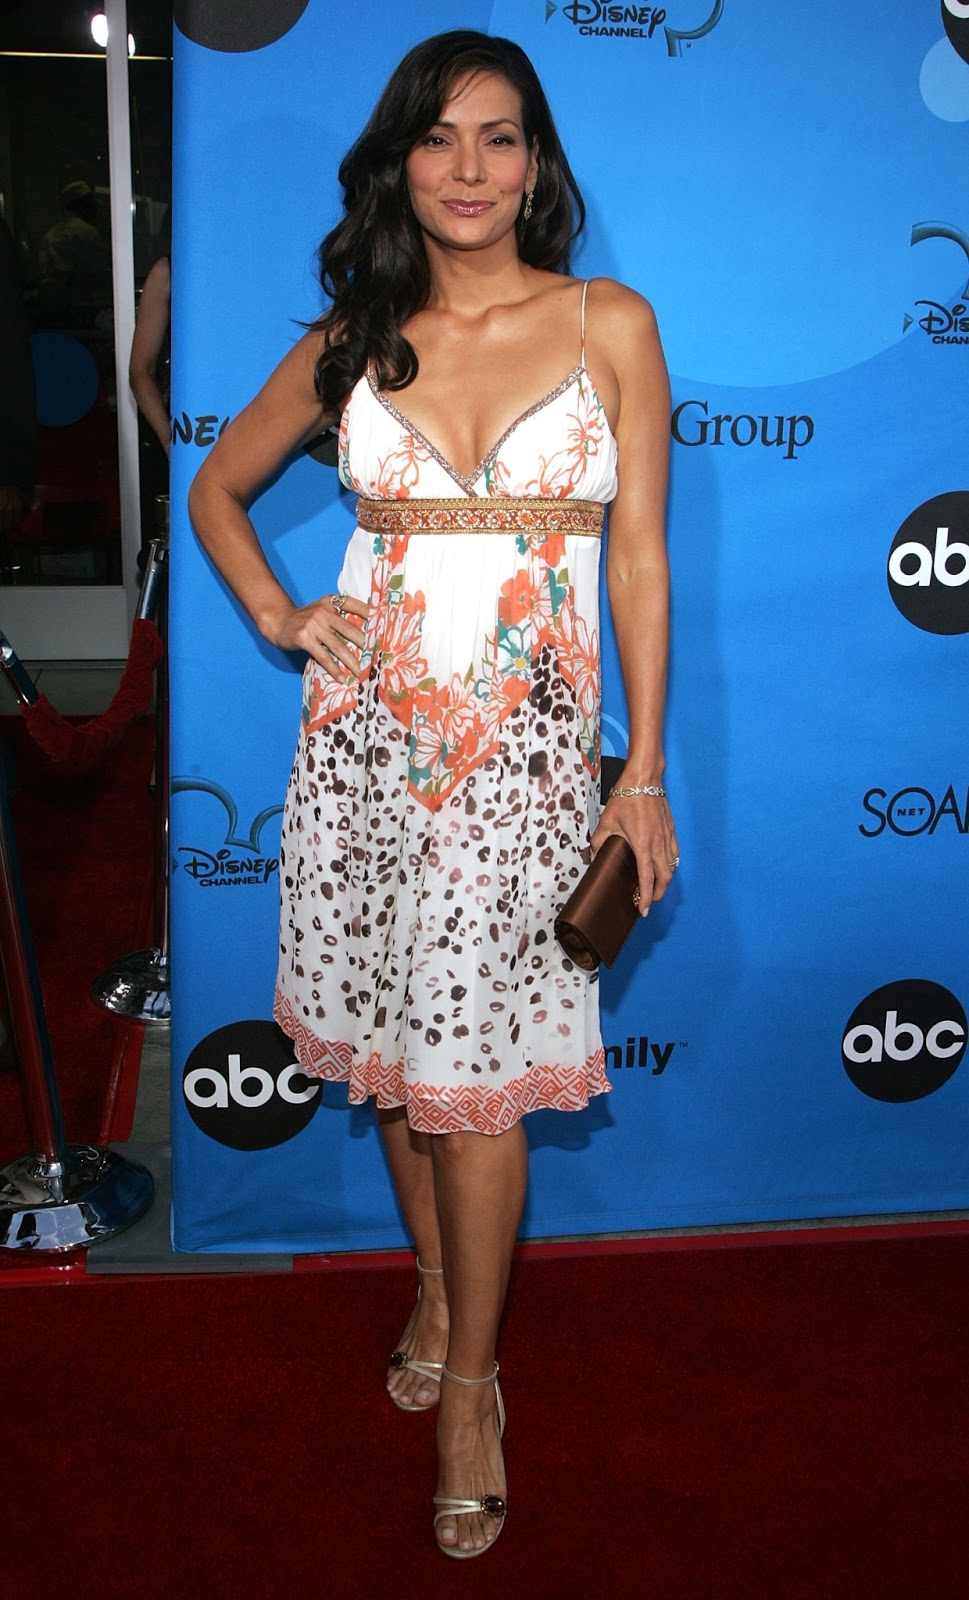 constance marie small boobs